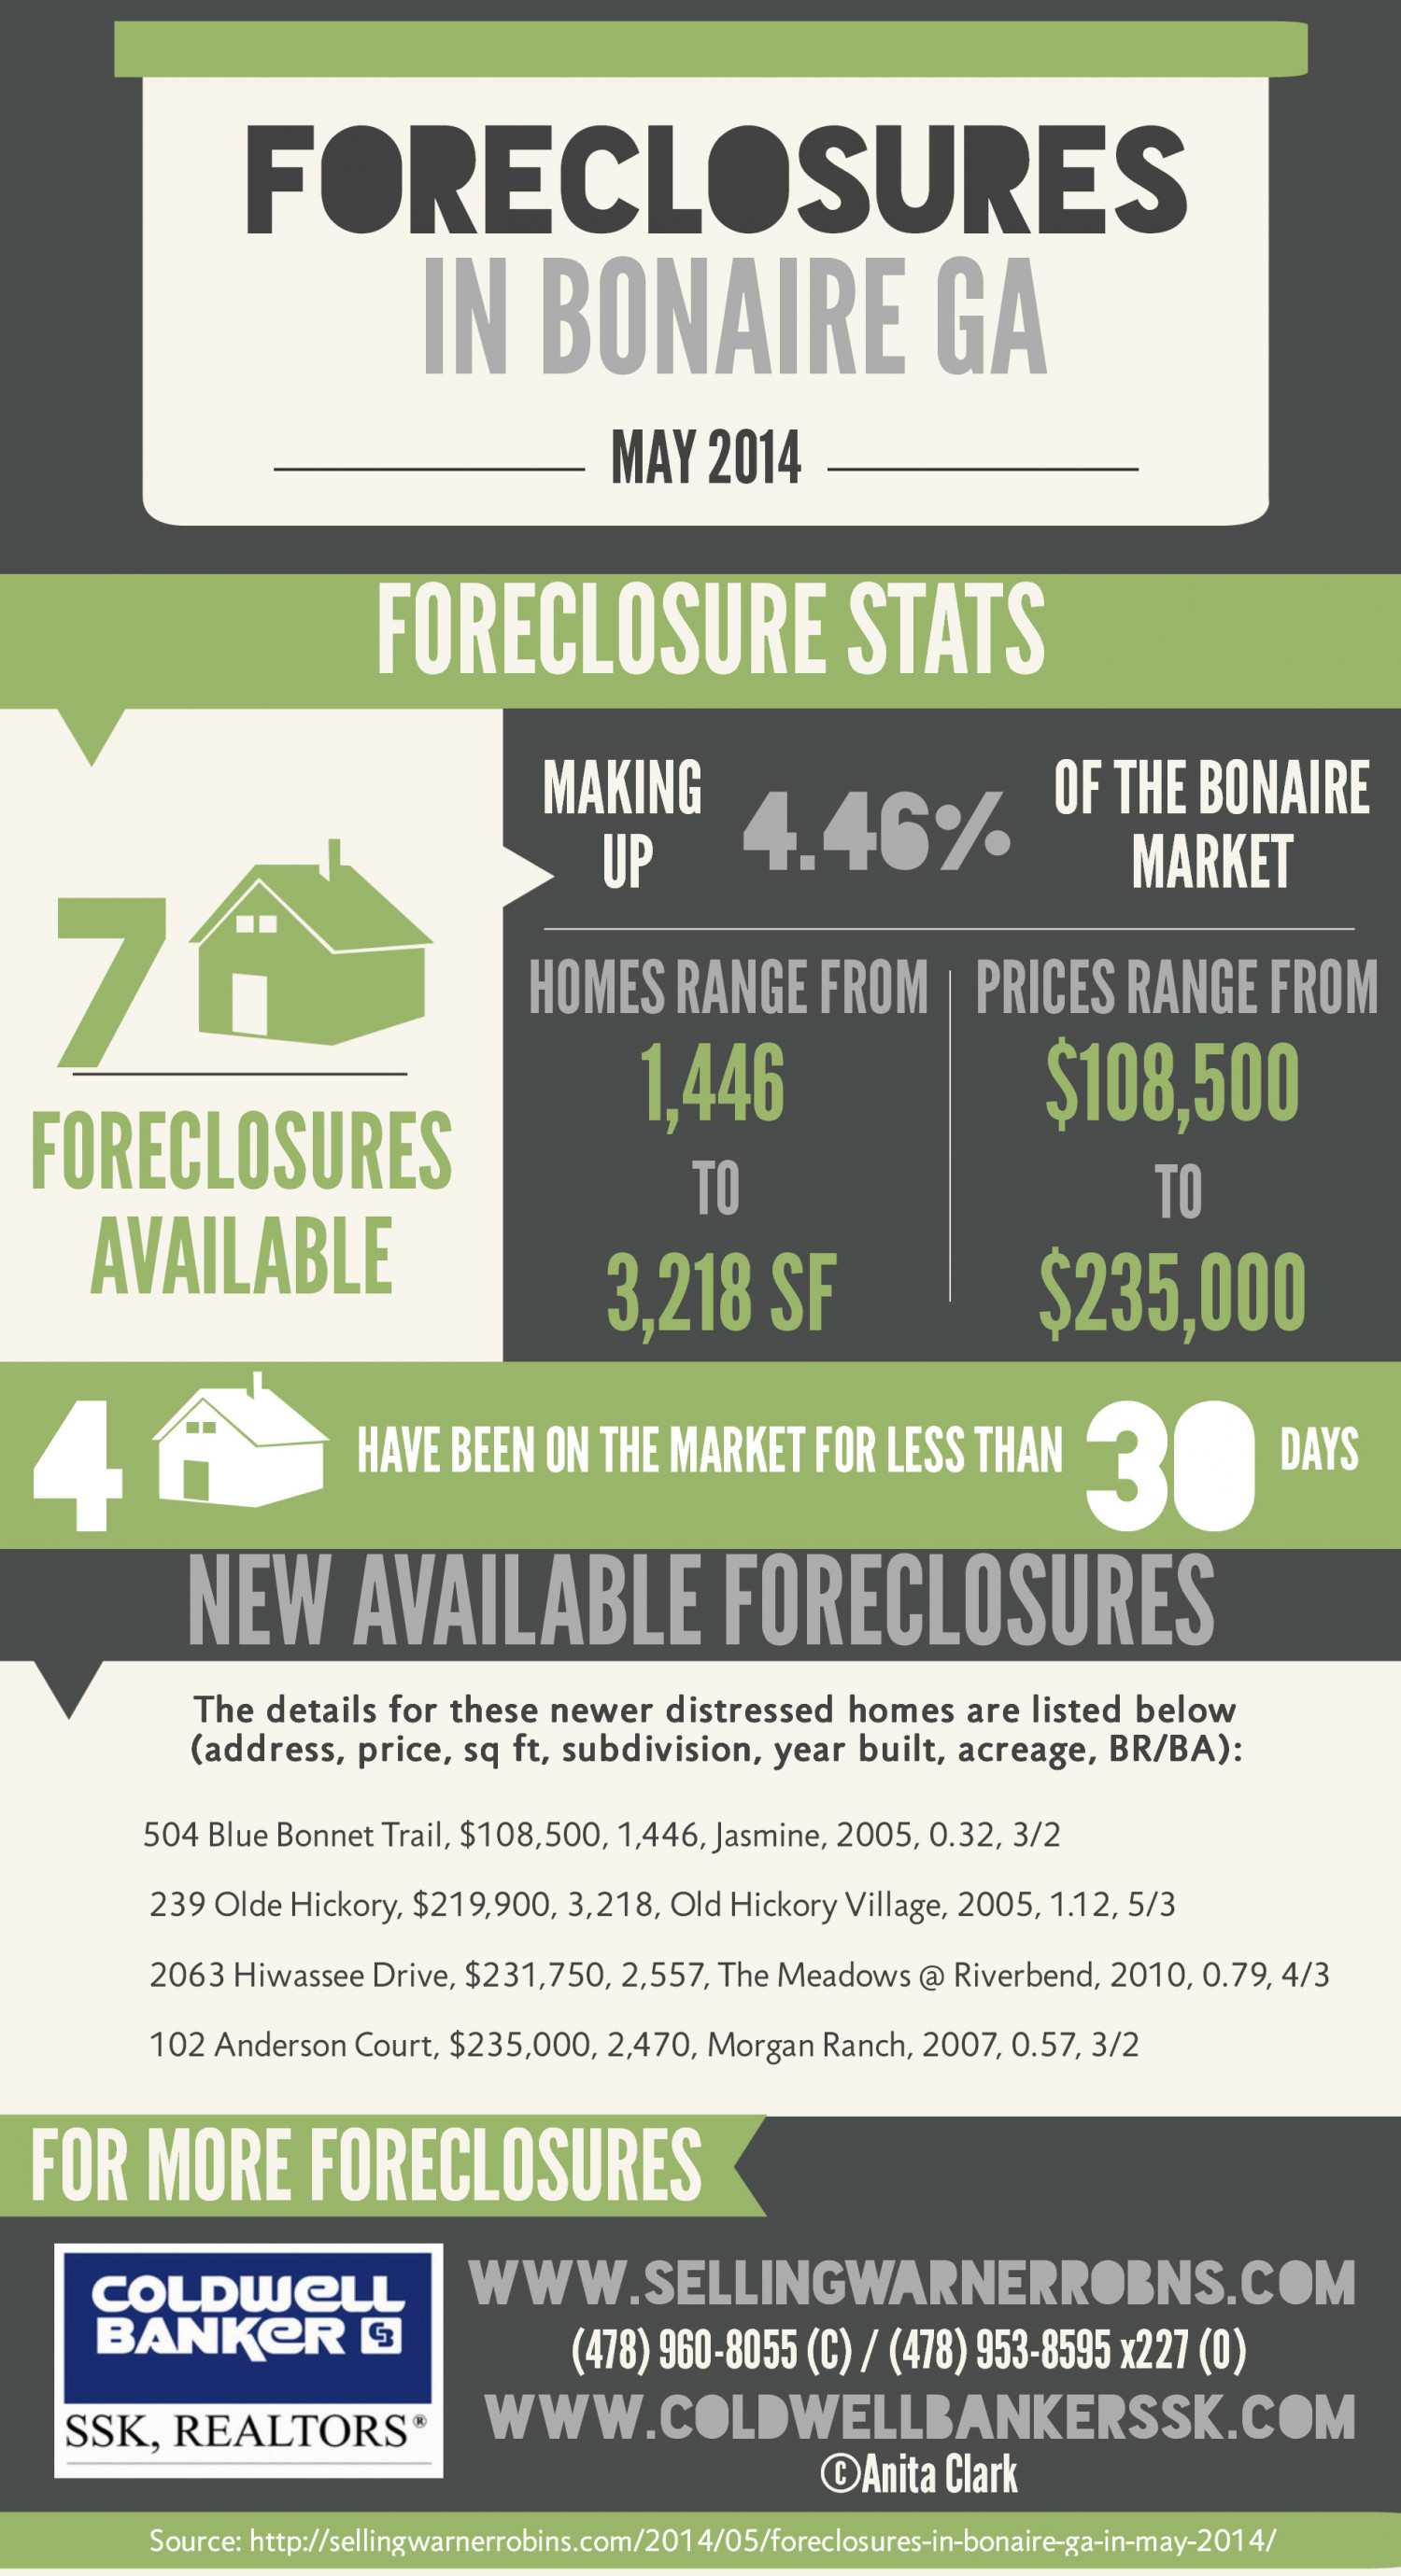 Foreclosures in Bonaire GA for May 2014 Infographic